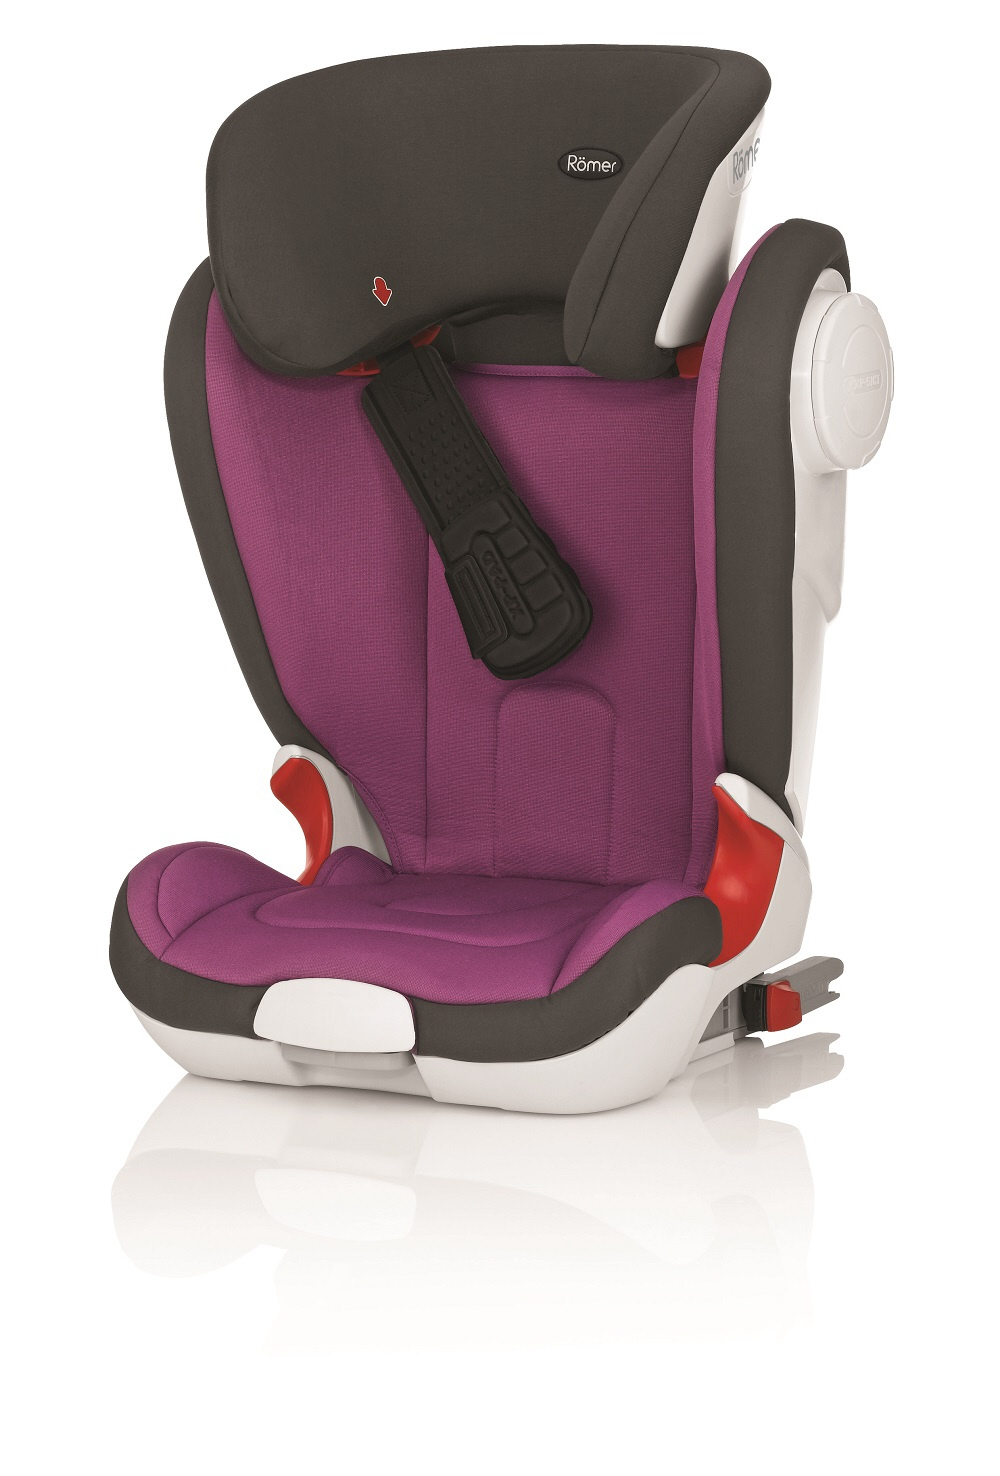 britax r mer child car seat kidfix xp sict 2015 cool berry. Black Bedroom Furniture Sets. Home Design Ideas